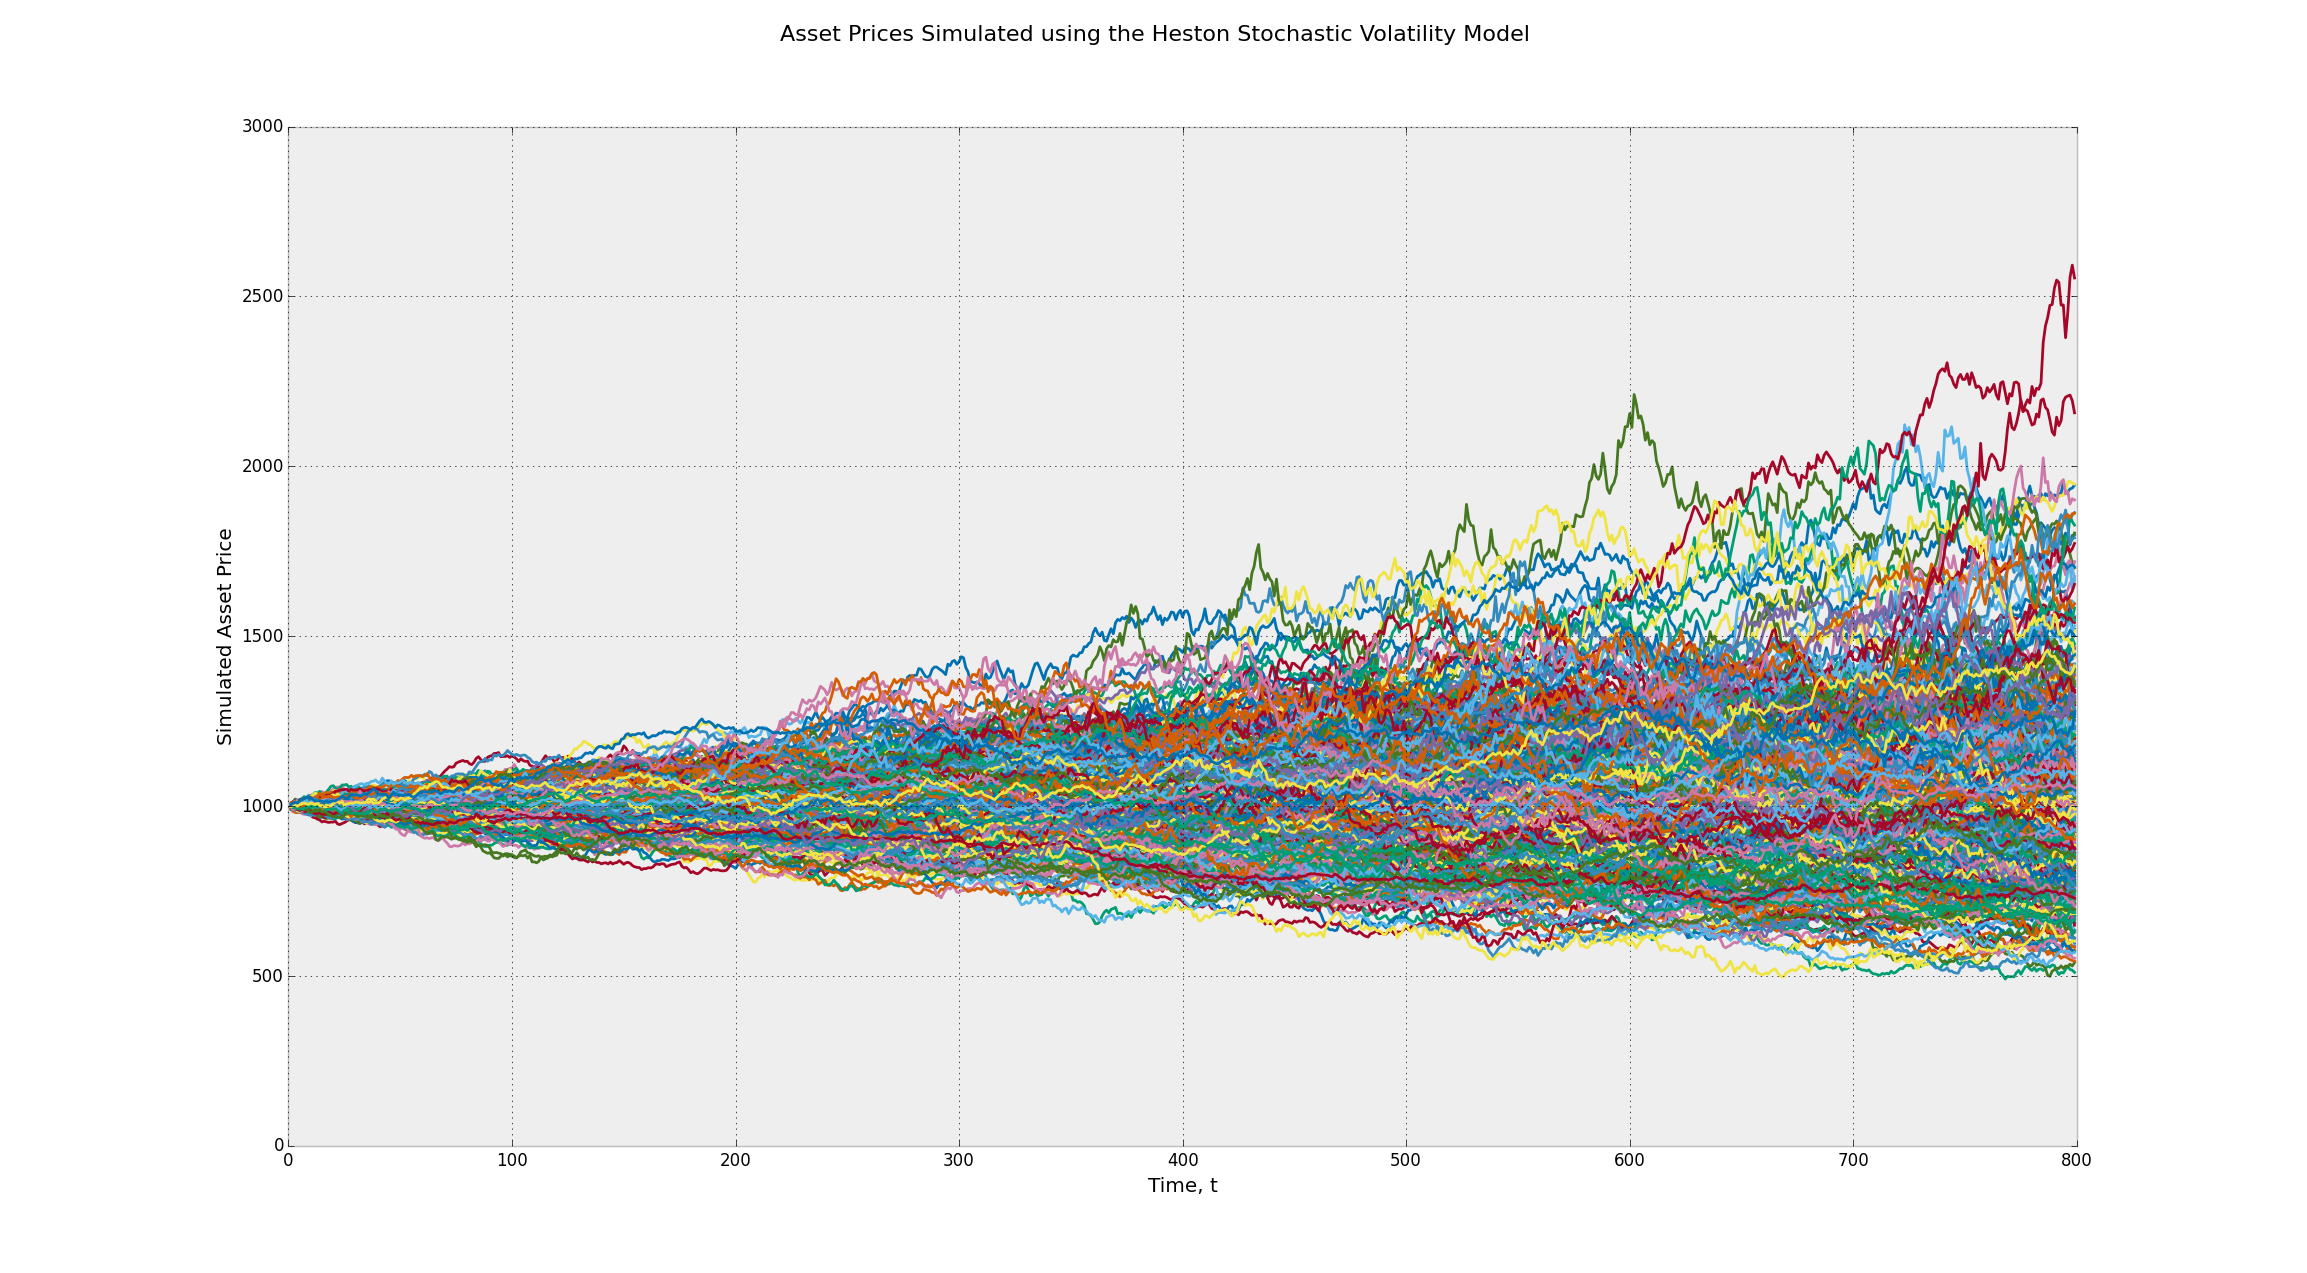 Asset Prices Simulated using the Heston Stochastic Volatility Geometric Brownian Motion Stochastic Process - Heston